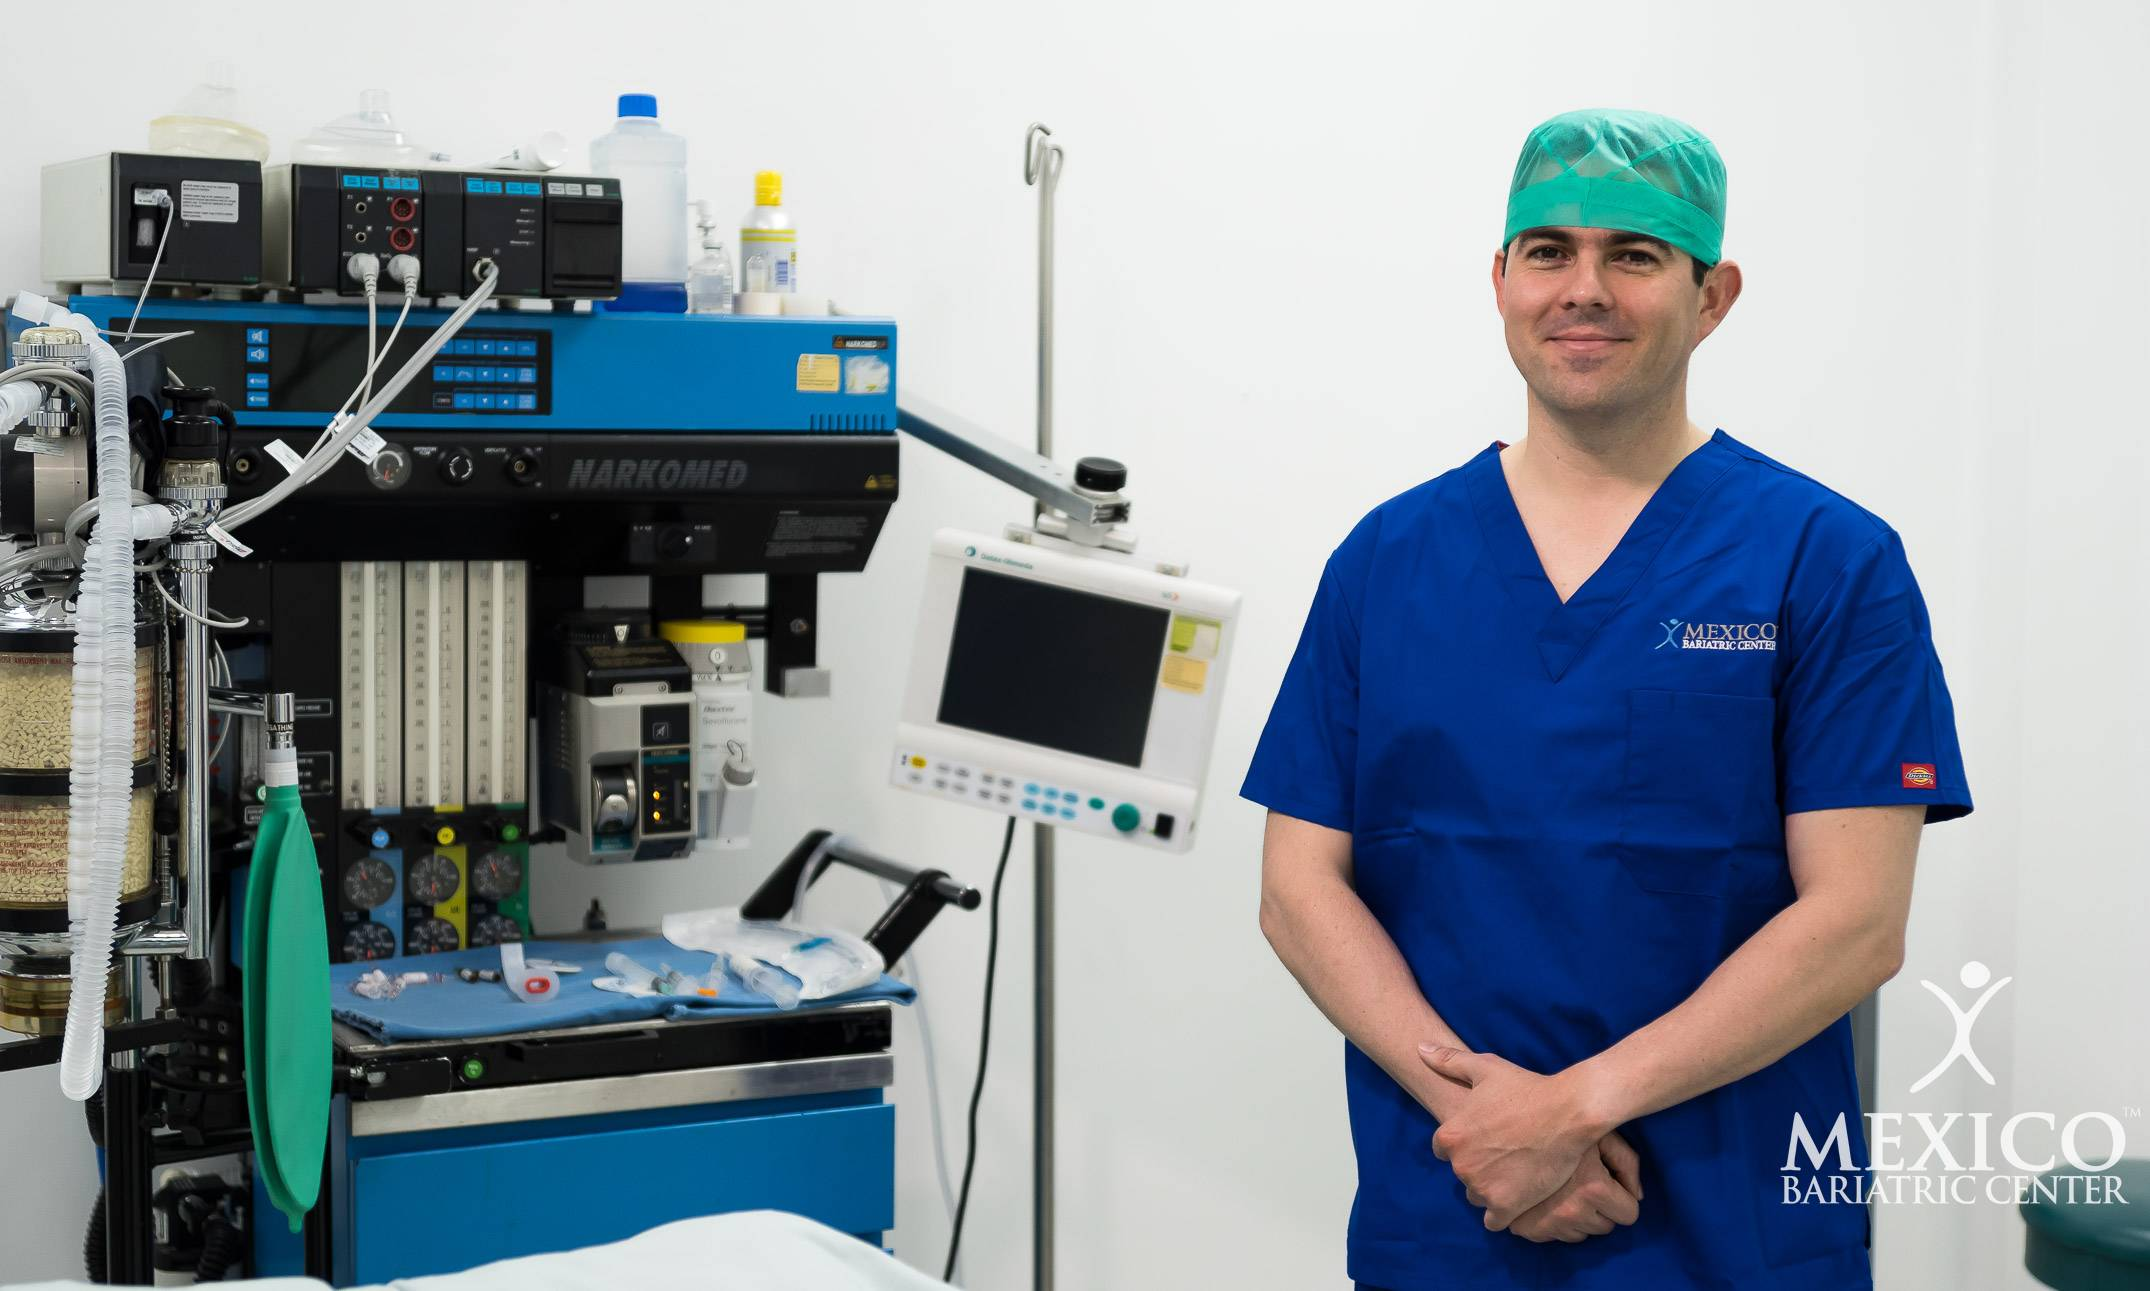 Dr Alejandro Gutierrez in operating room with bariatric equipment